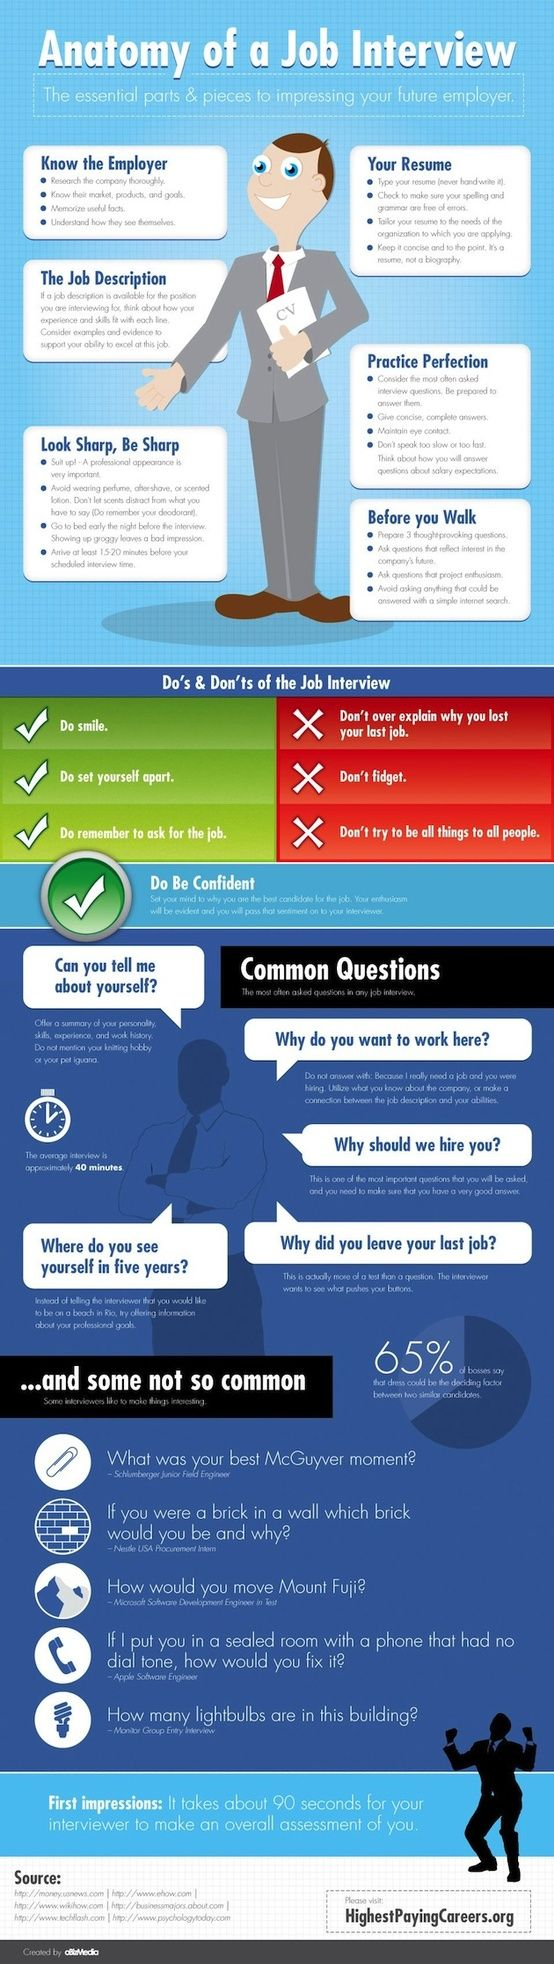 best images about ace your next job interview 17 best images about ace your next job interview interview common job interview questions and career advice